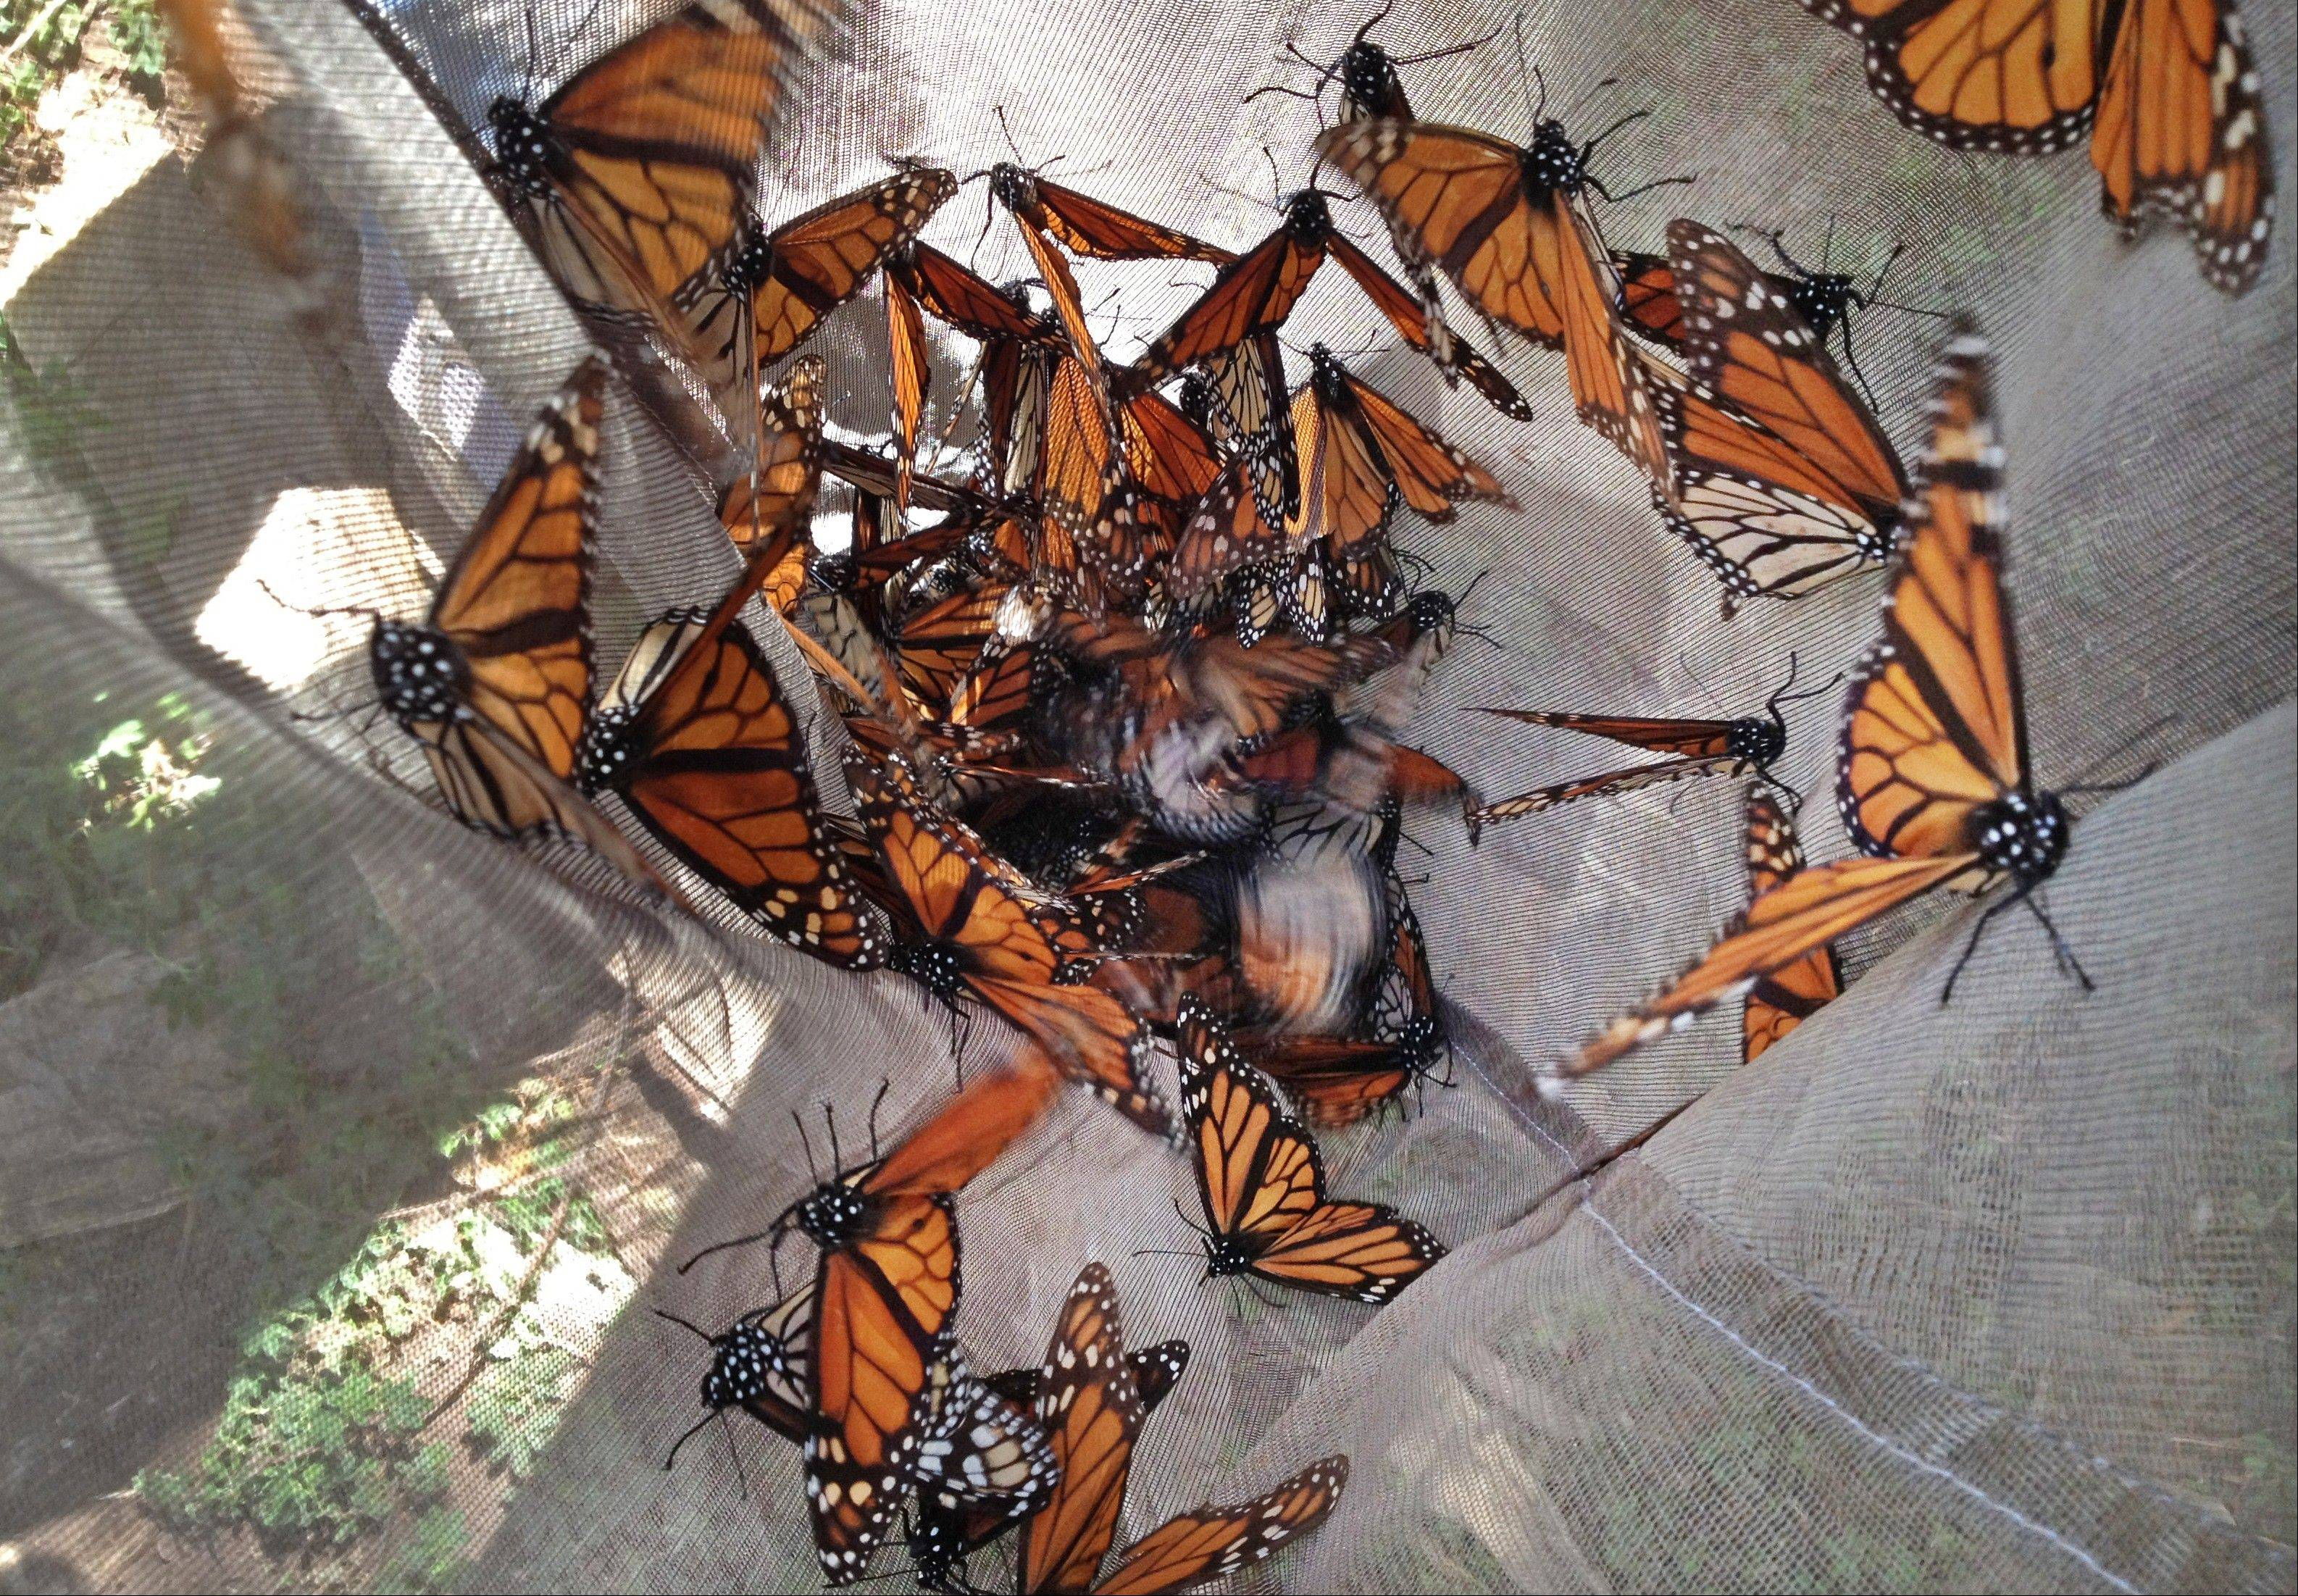 Monarch butterflies are collected in a net to be tested for the ophroyocystis elektroscirrha parasite that inhibits their flight, at El Capulin reserve, near Zitacuaro, Mexico. The tiger-striped butterflies arrive in late October and early November to hibernate in fir trees until February.